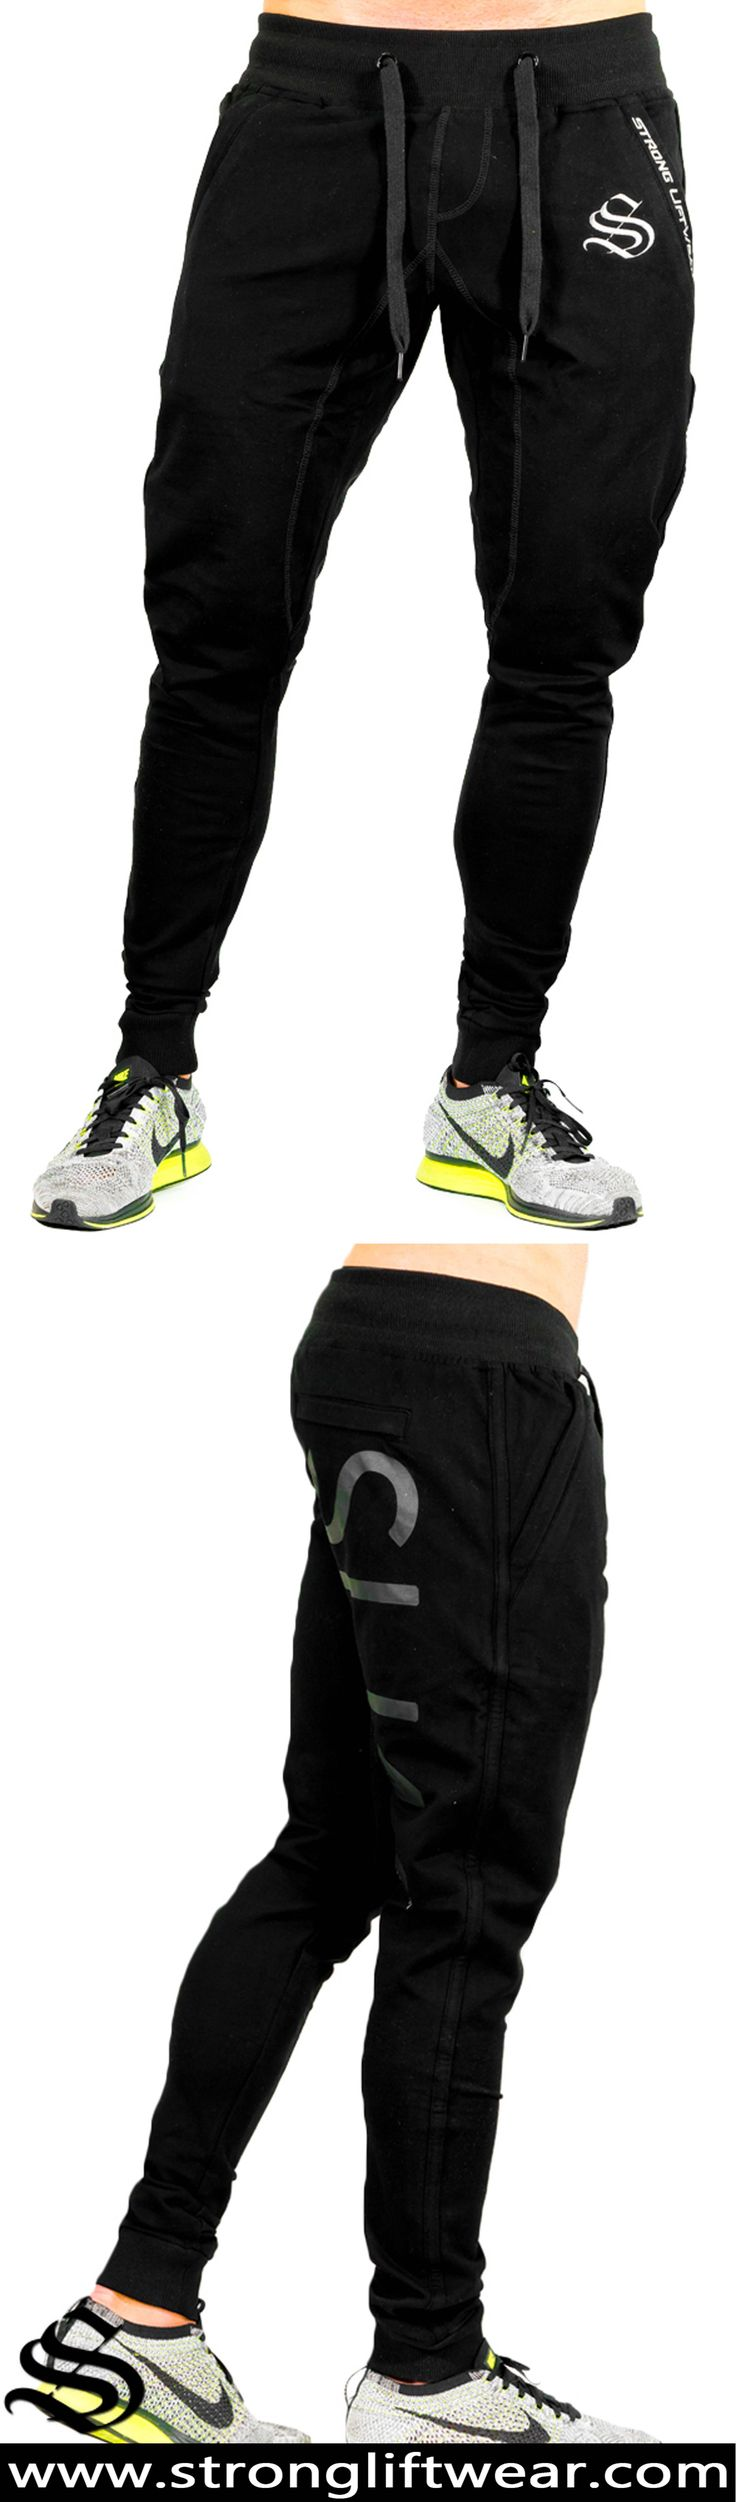 Active Training Pants - Black │gym wear │fitness wear │fitness clothing  │fitness